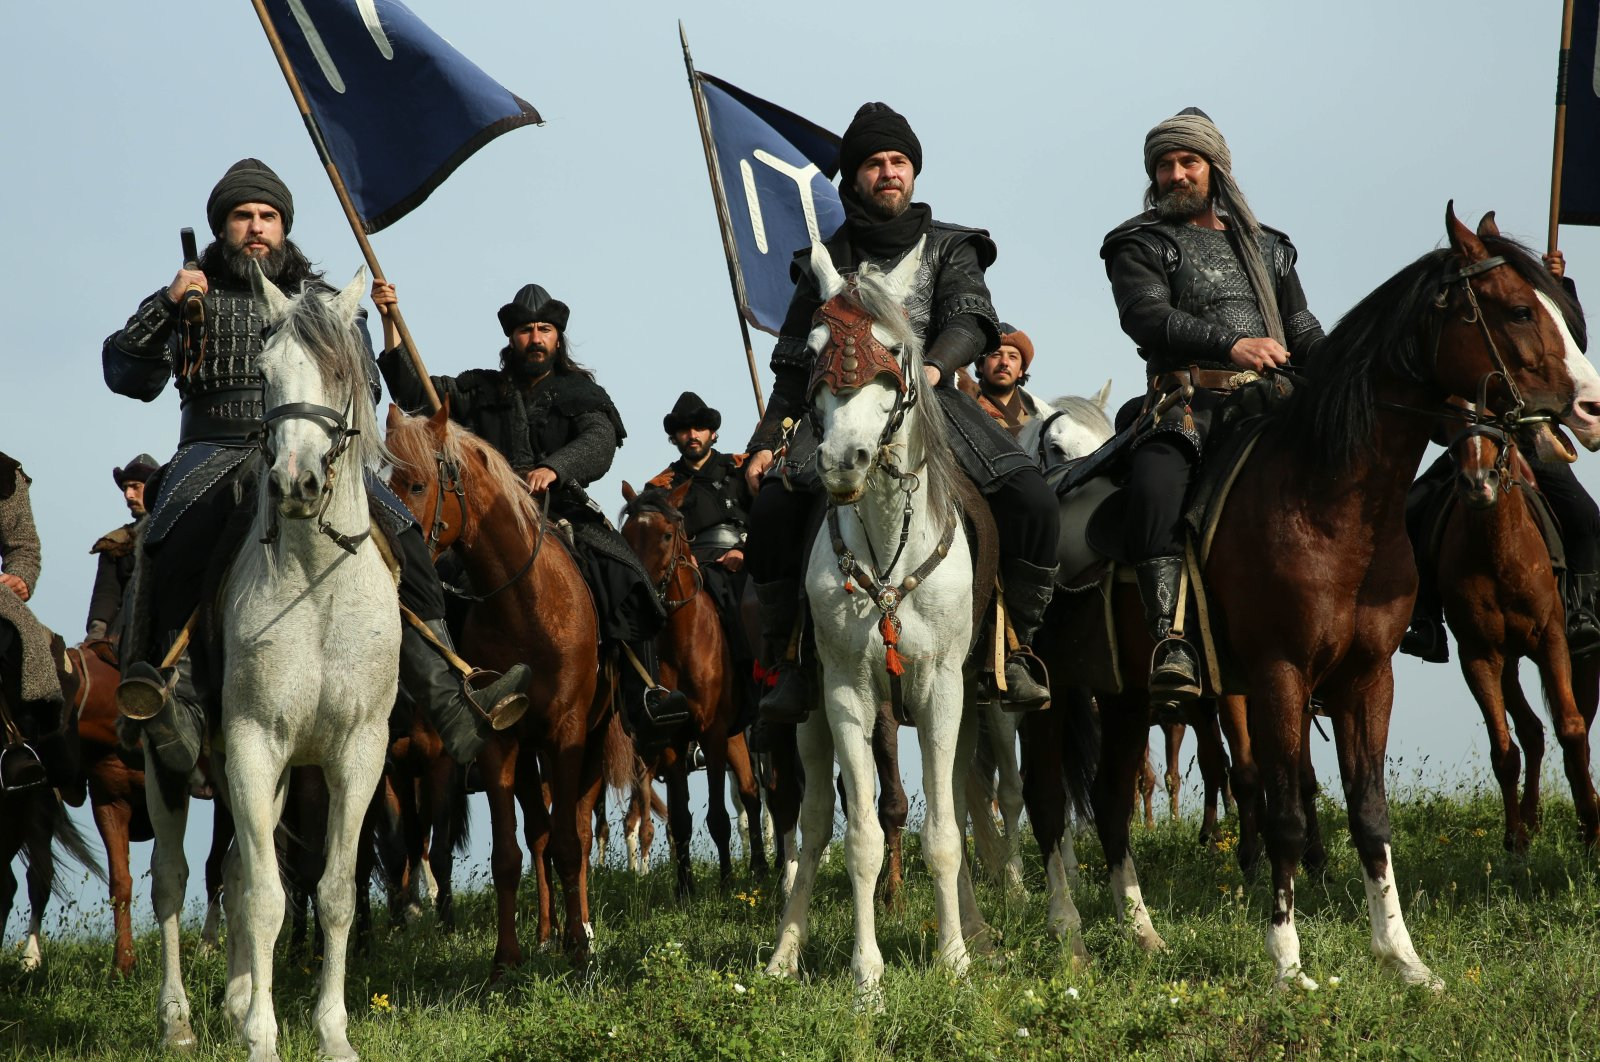 """A still shot from the Turkish series """"Resurrection: Ertuğrul"""" depicting Ertuğrul (C) and other Turkish heroes (Alps) riding horses and holding the iconic flag of the Kayı tribe."""